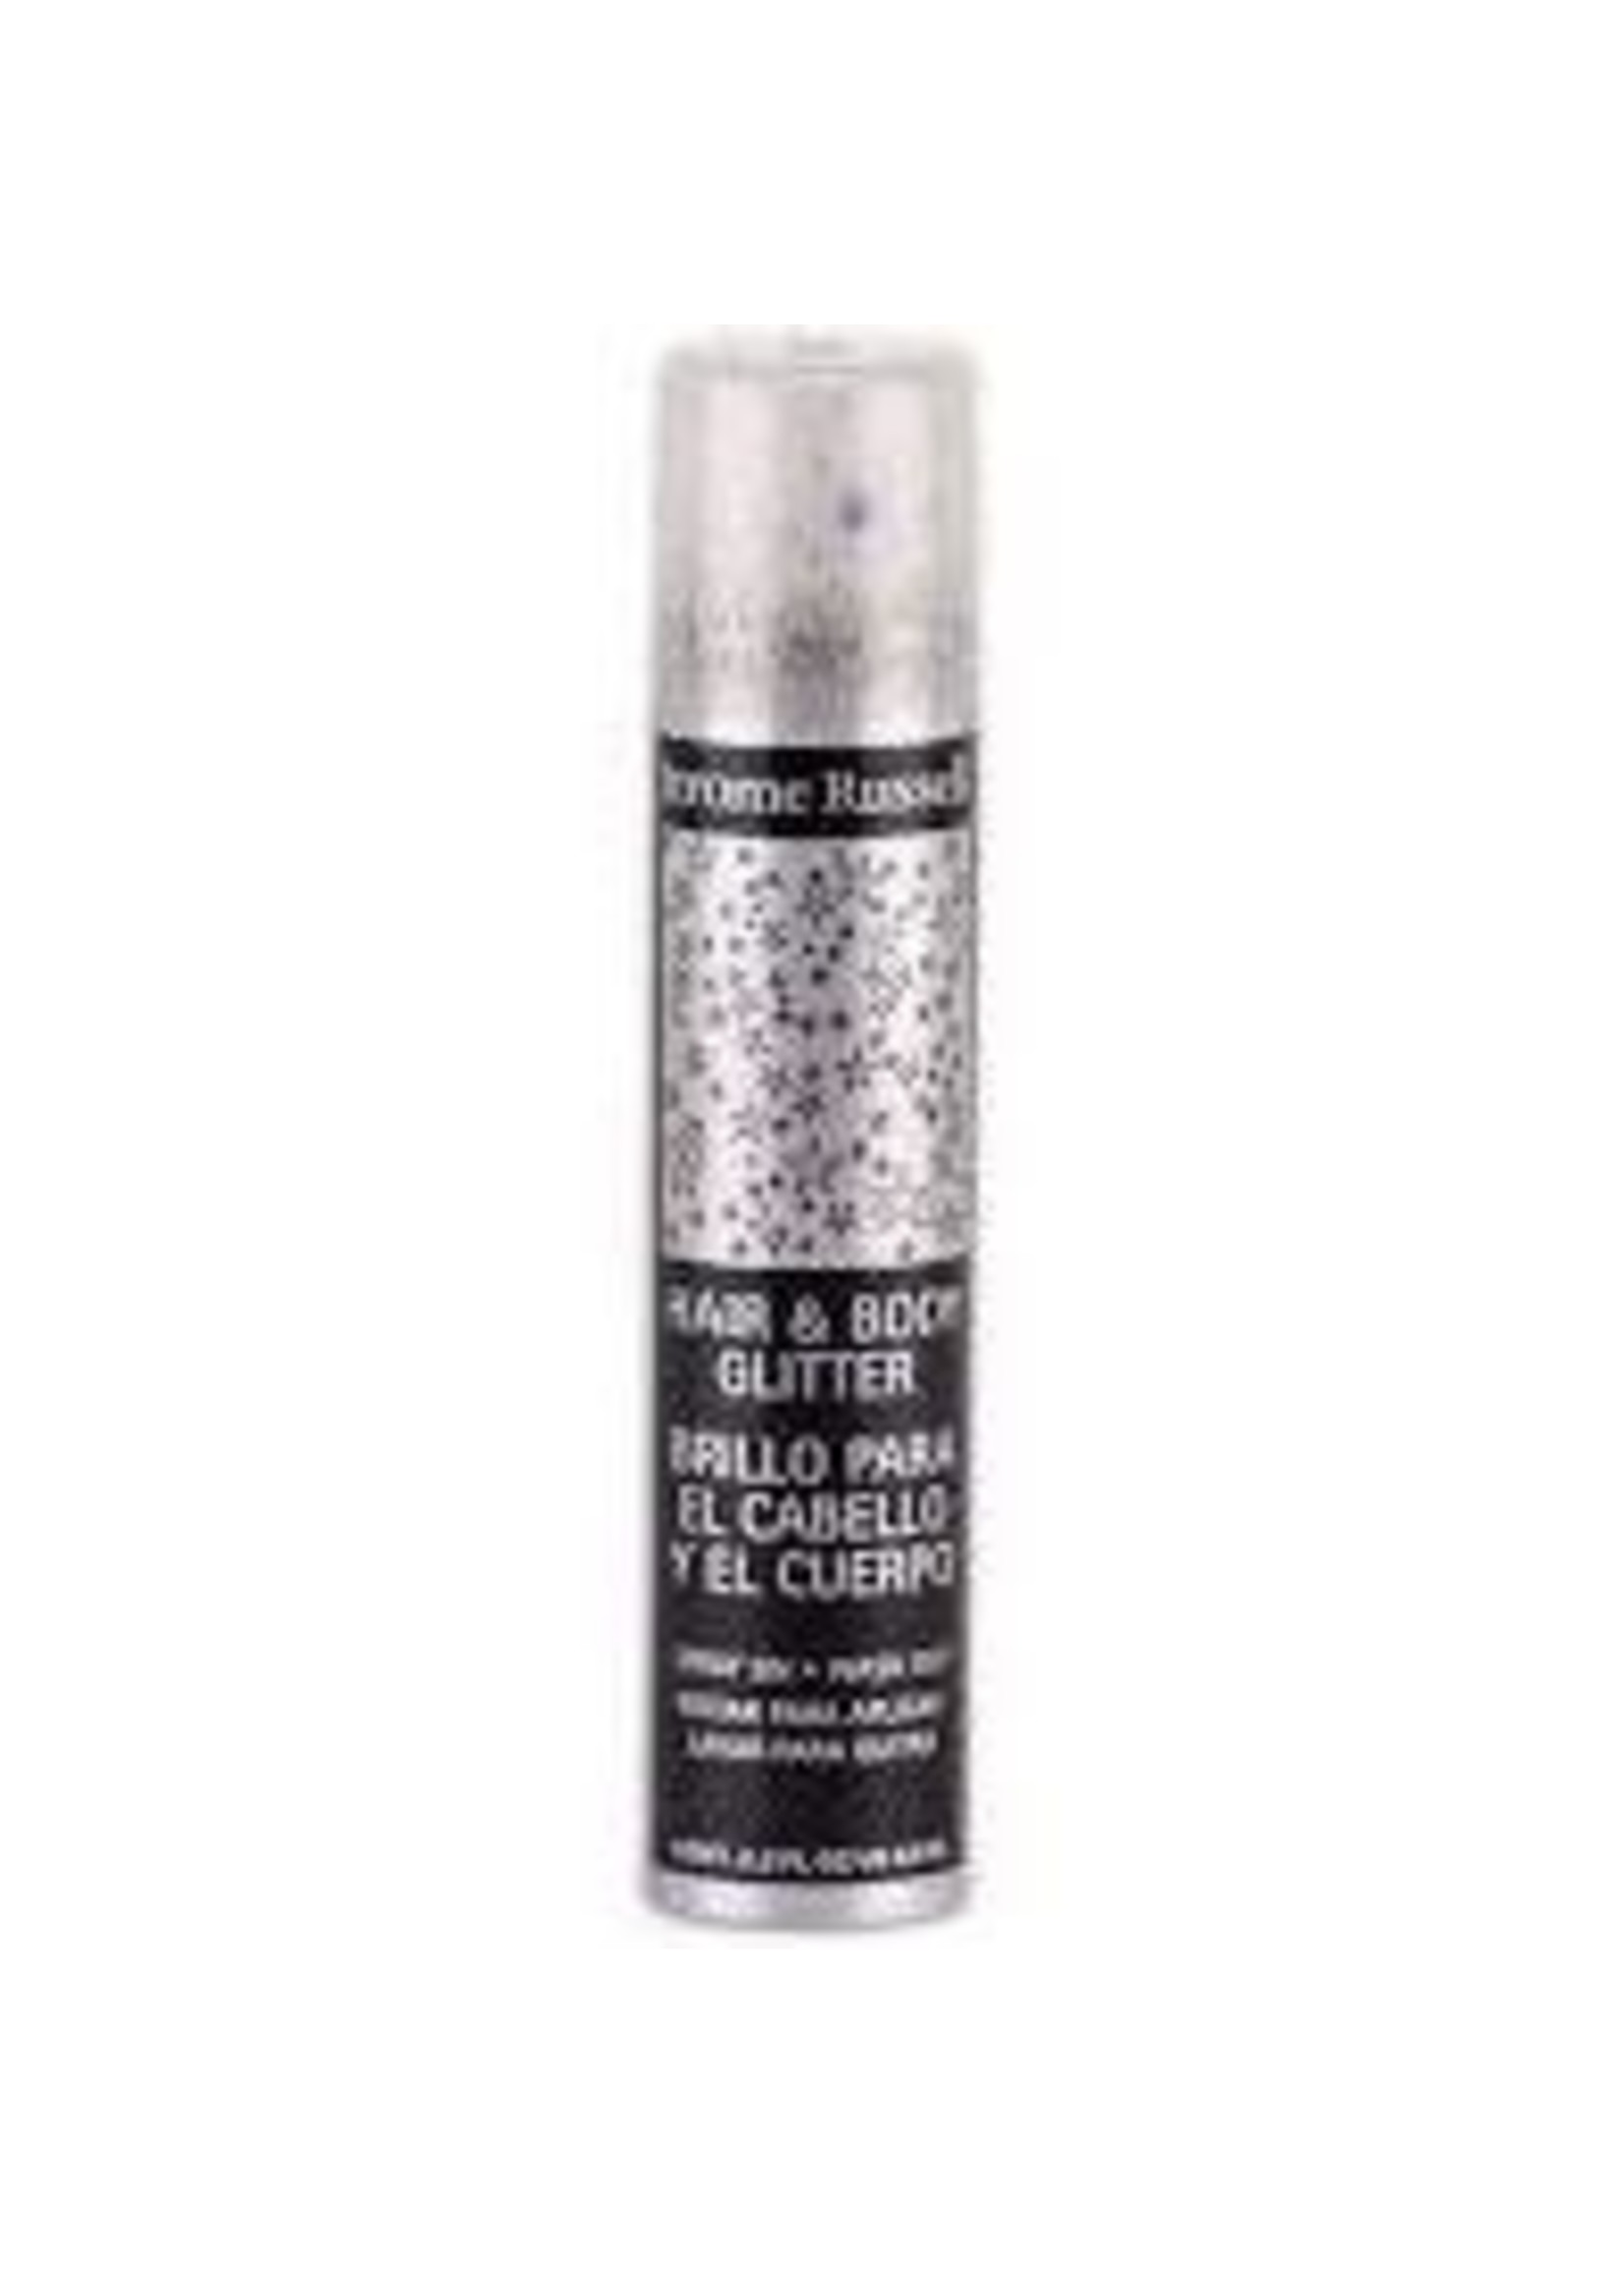 Jerome Russell Hair & Body Glitter Silver